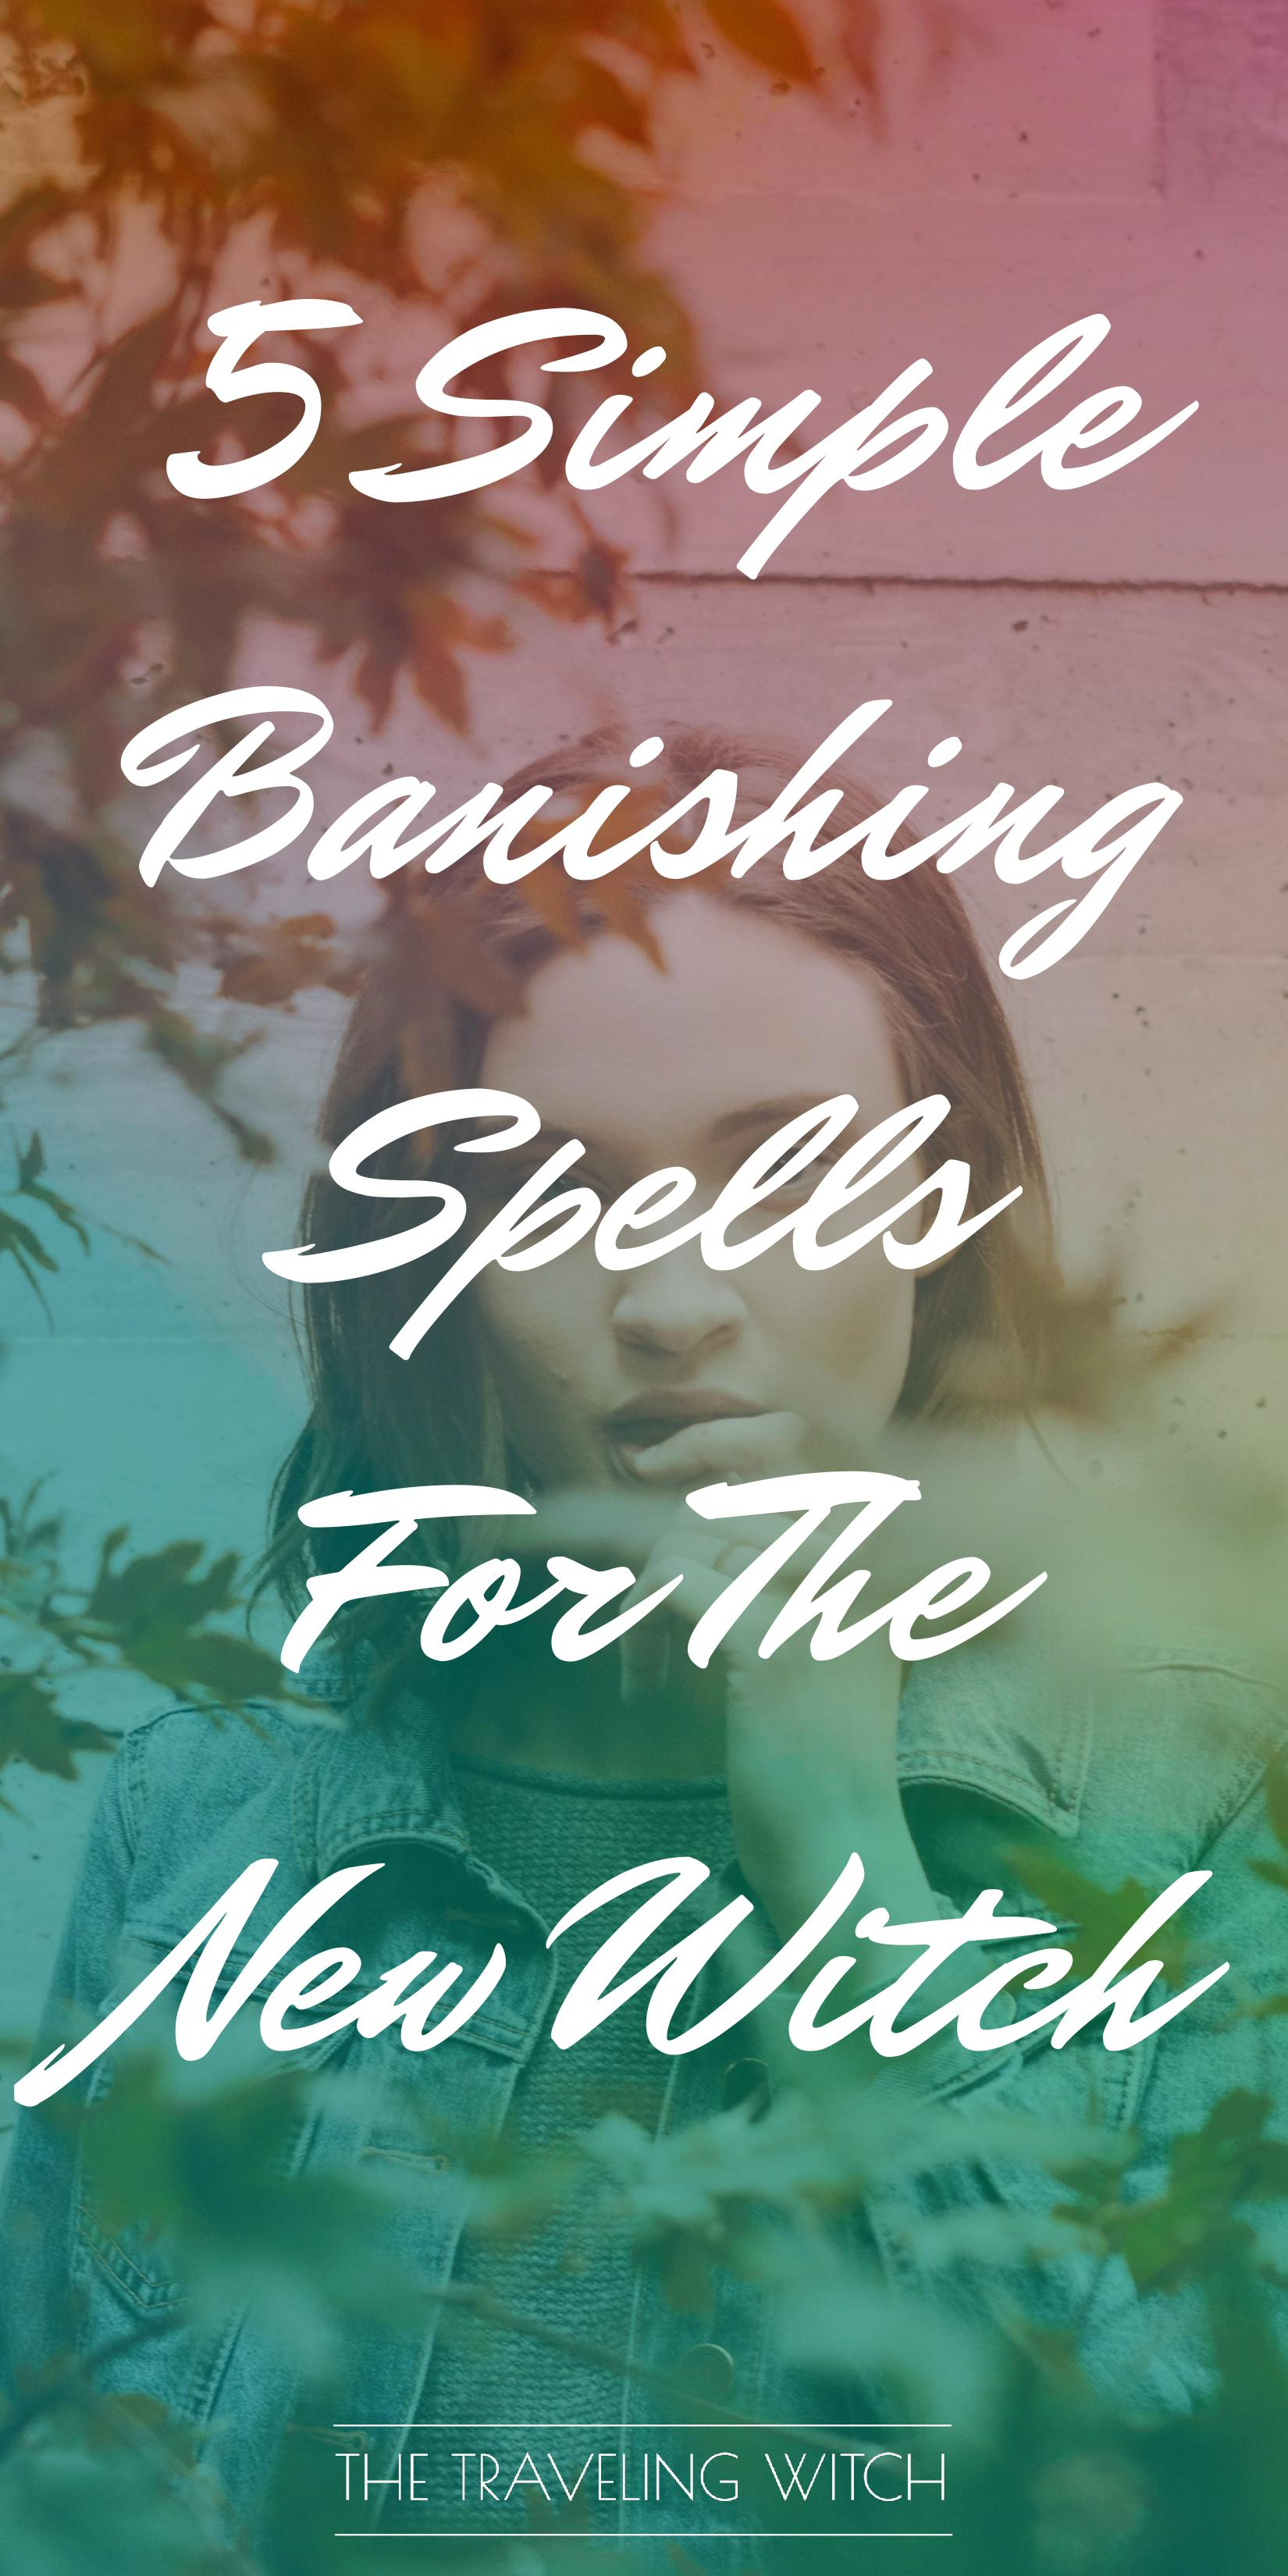 5 Simple Banishing Spells for the New Witch — The Traveling Witch